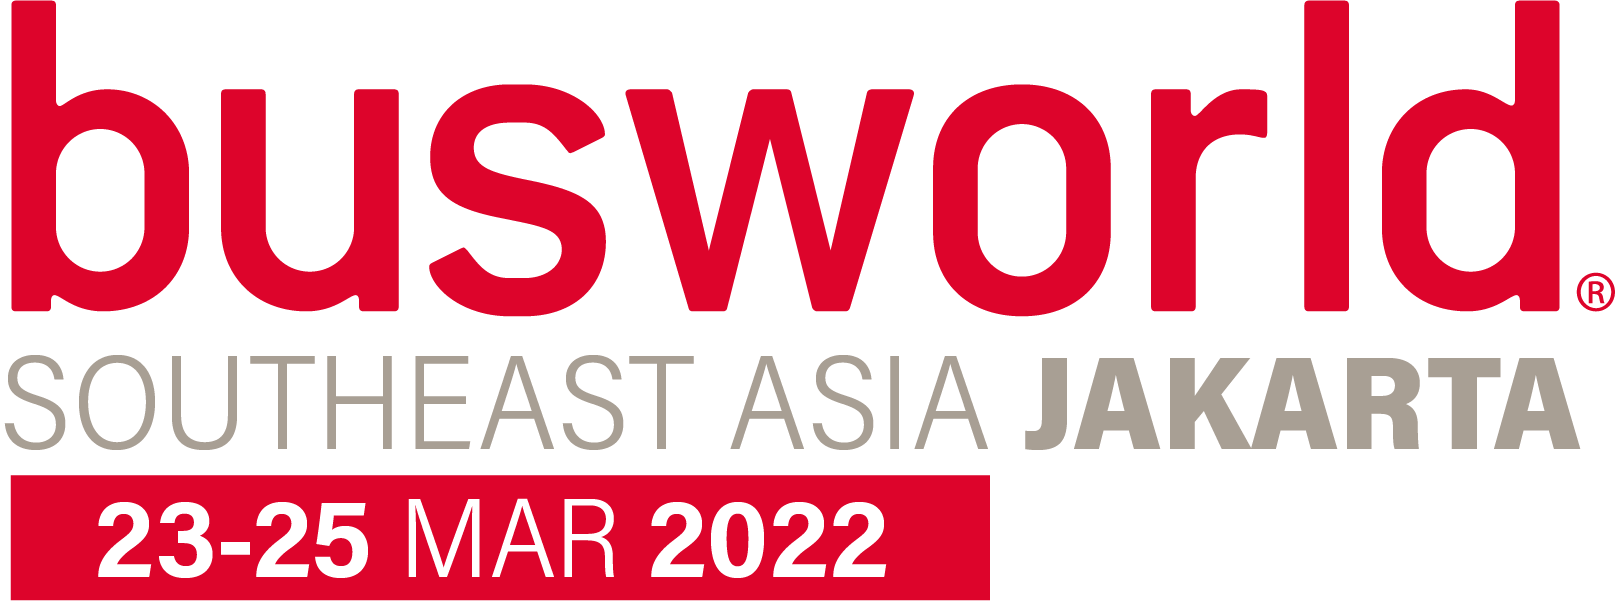 Busworld Southeast Asia 2022 logo